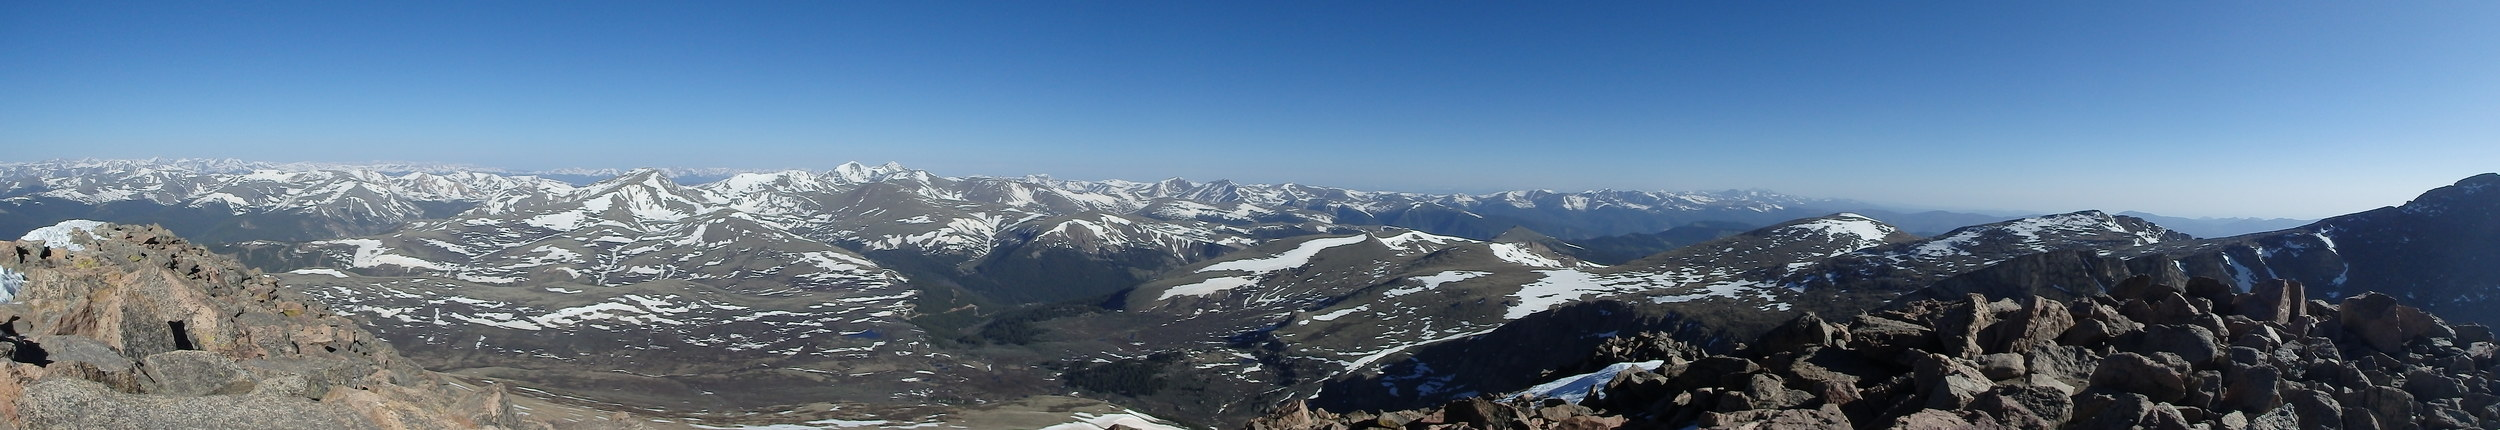 Panoramic from the Summit of Mt. Bierstadt. 14,060 ft.